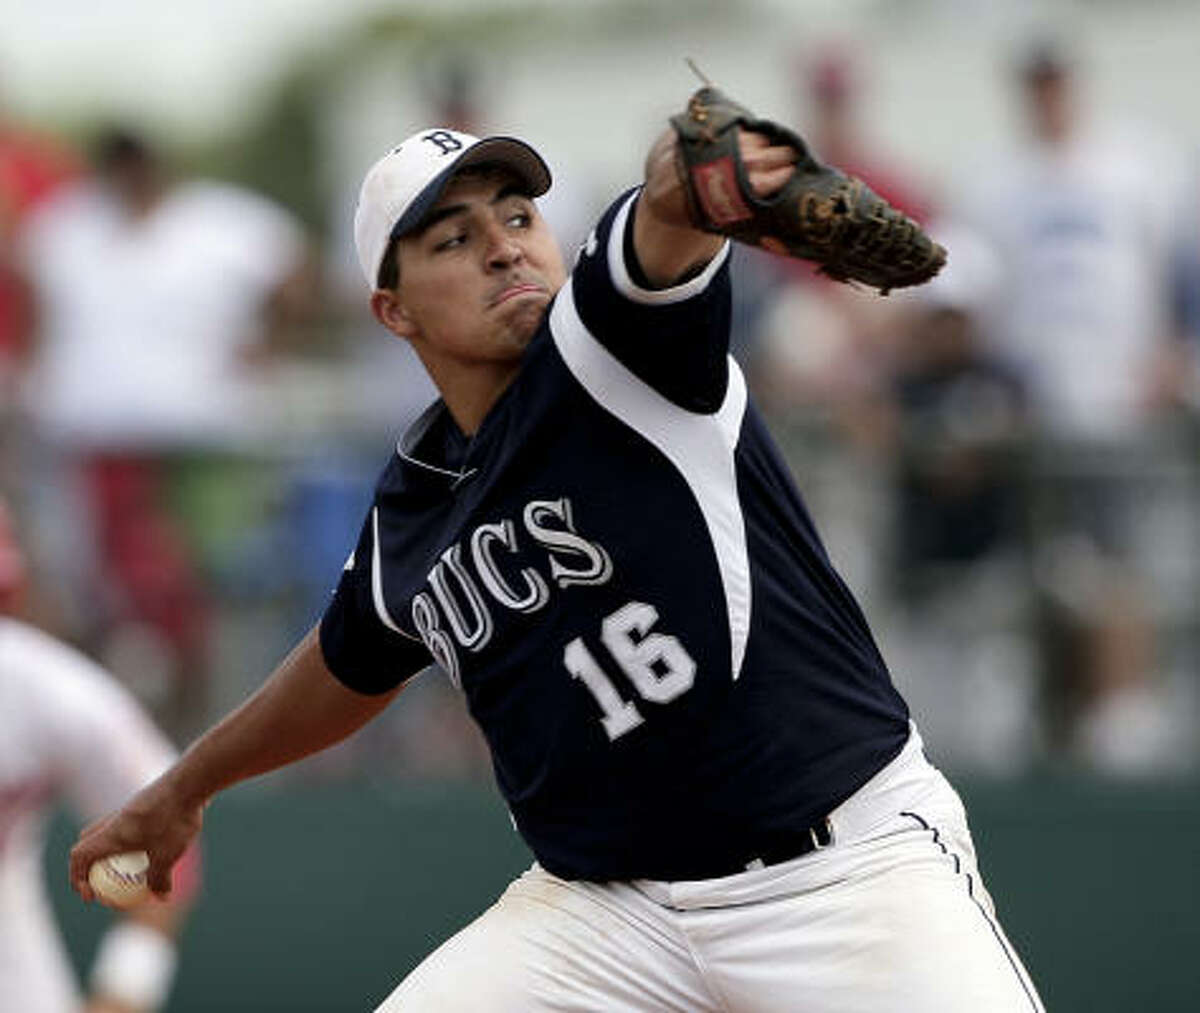 Brazoswood pitcher Anthony McIntyre throws against Bellaire.